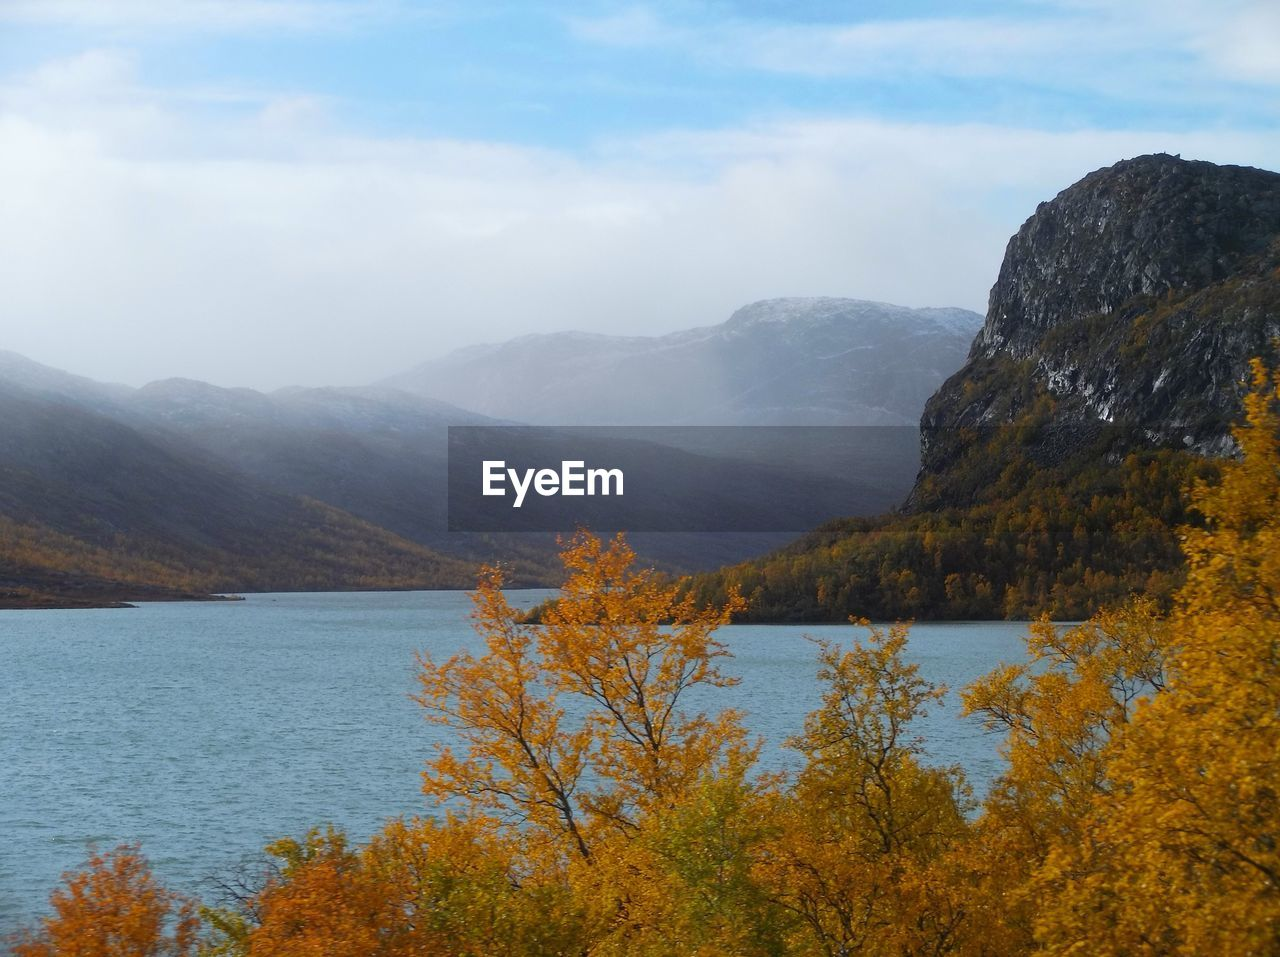 water, mountain, beauty in nature, sky, scenics - nature, tranquil scene, plant, tranquility, nature, lake, mountain range, tree, day, cloud - sky, non-urban scene, no people, idyllic, environment, autumn, outdoors, change, mountain peak